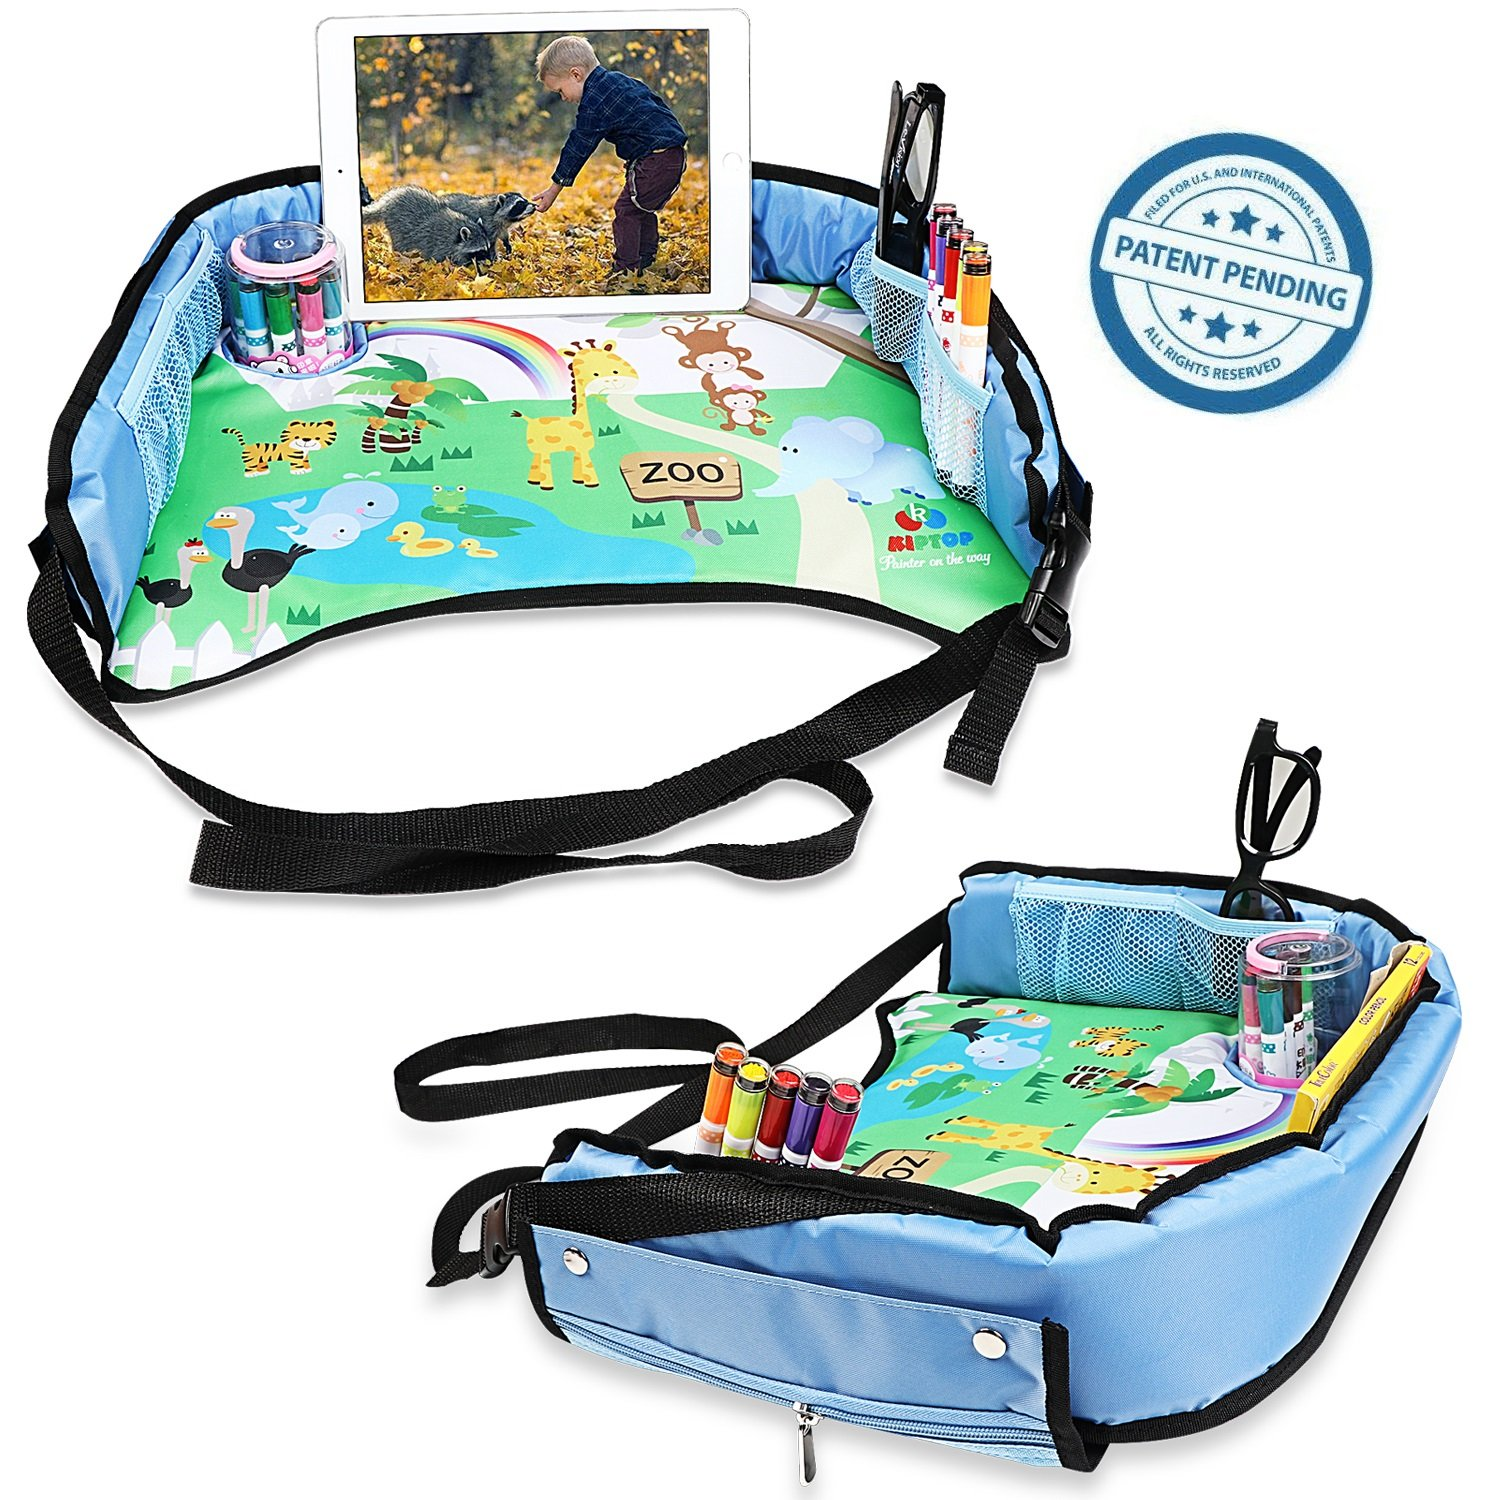 KIPTOP Toddler Car Seat Travel Tray Blue Soft and Sturdy Portable Lap Activity and Snack Desk for Cars Toy organzier Waterproof /& Durable Planes and Strollers